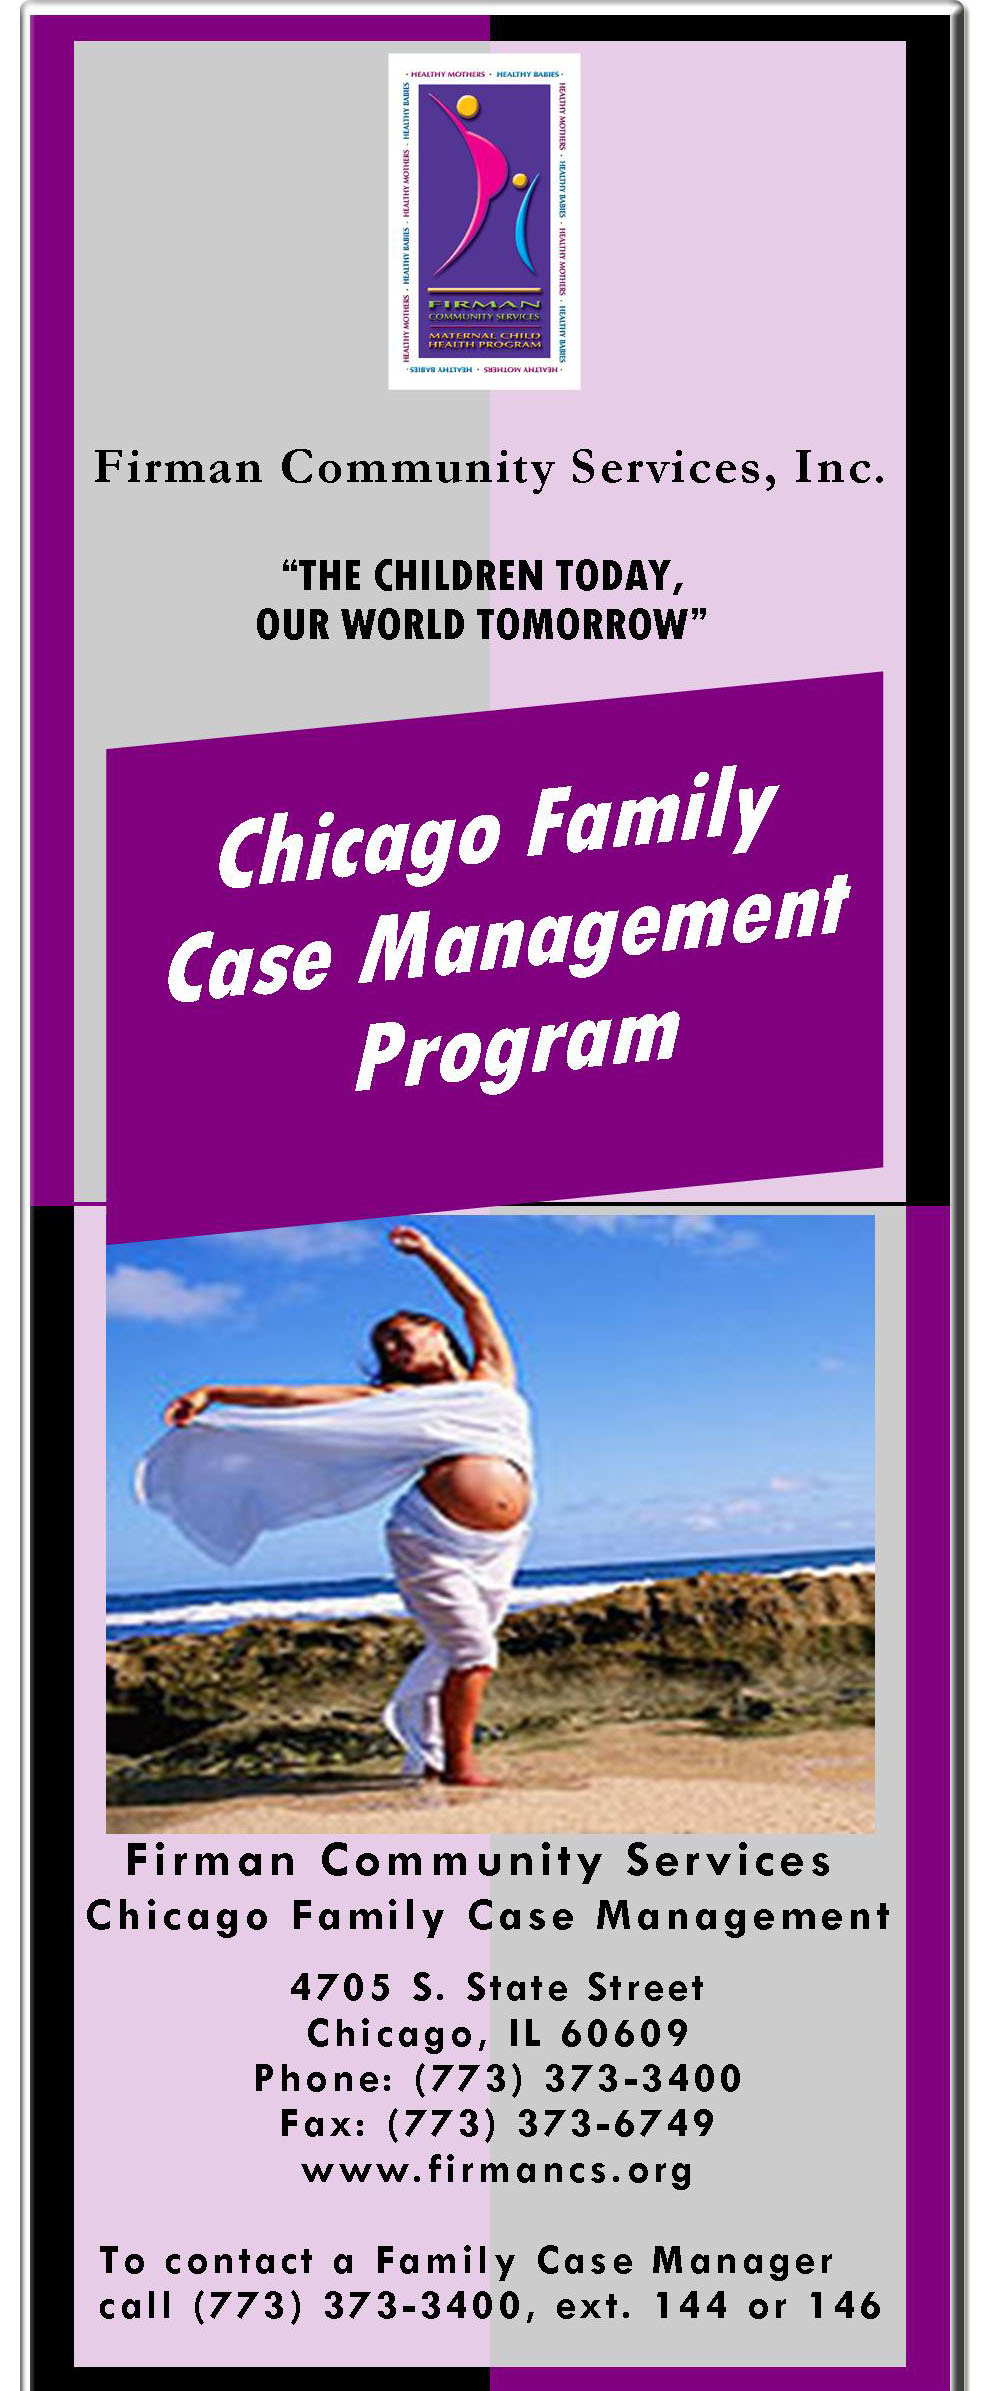 Chicago Family Case Management Program. Chiropractic Wichita Ks New Jigu Trading Corp. What Is Epinephrine Injection. Basement Moisture Problems Cheap Roll Labels. Car Accident Attorney Denver Leads On Line. Web Page Design Templates Free Download. Online Medical Billing And Coding School. Cosmetic Dentistry Maryland Loans 0 Interest. For Profit Online Colleges Prepend Cell Phone